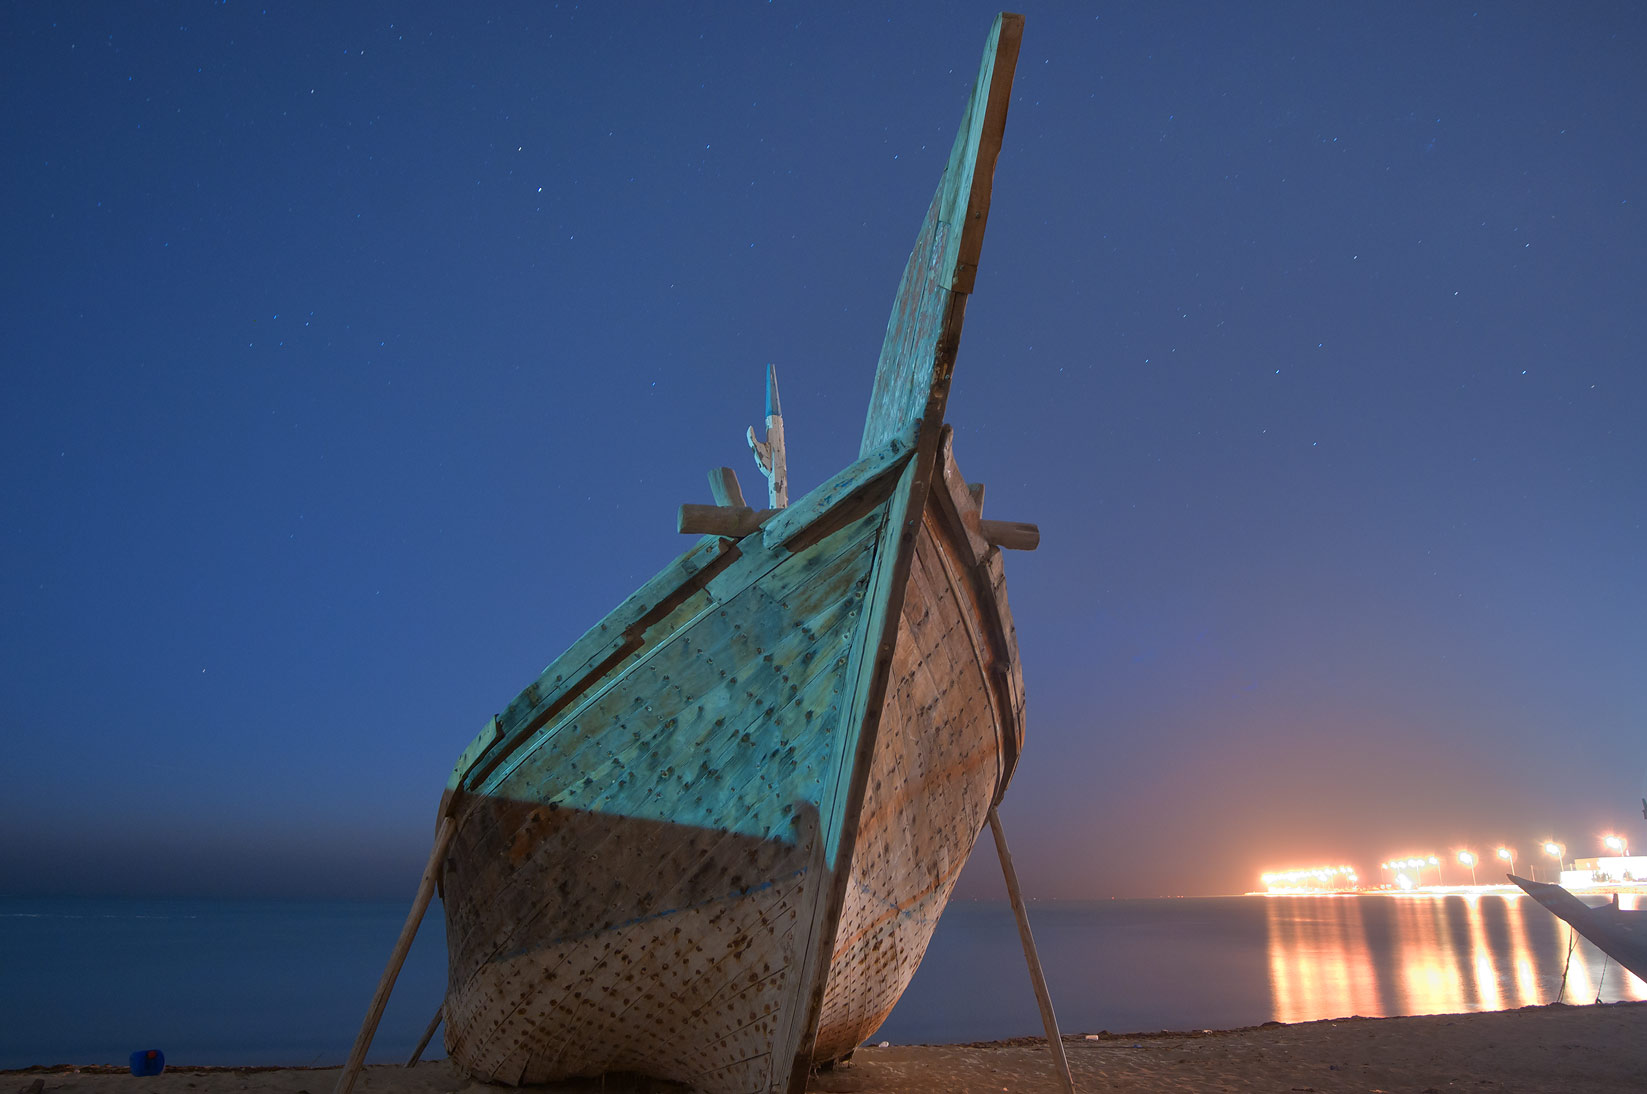 Fishing boat on a beach near heritage village at morning dusk. Al Wakrah, Qatar